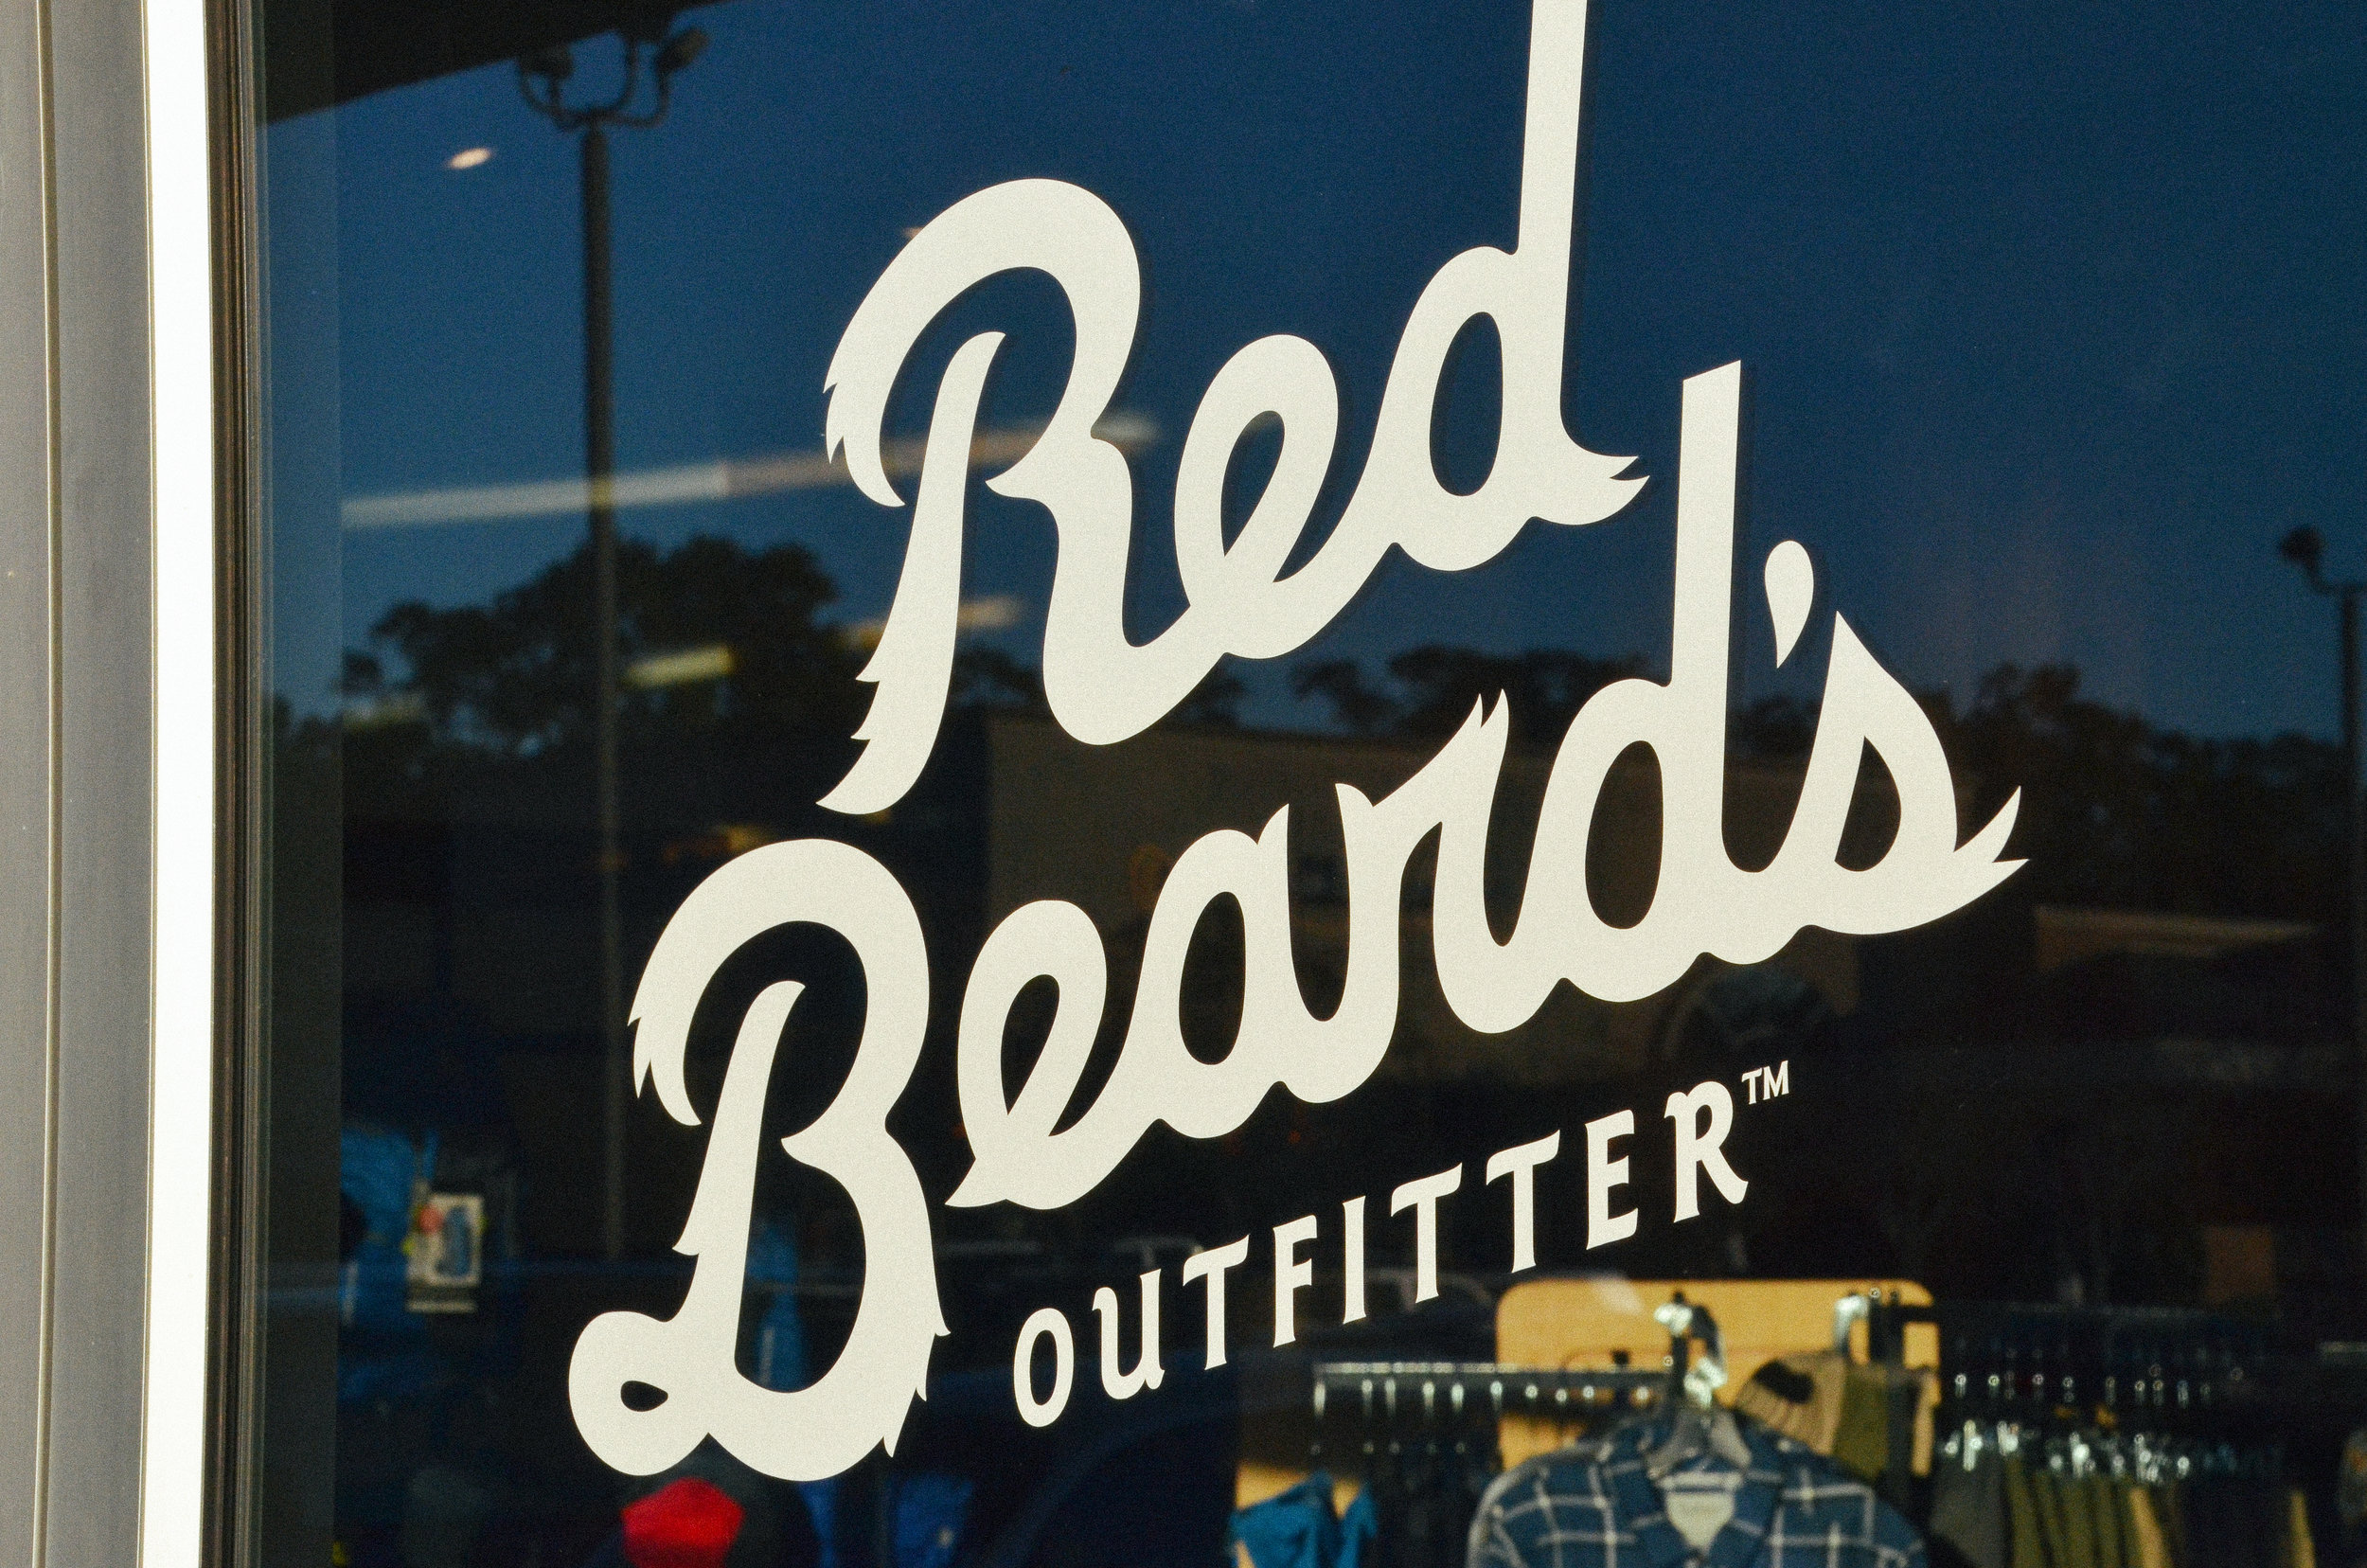 Ant Farm Journal  Red Beard's Outfitter | Mobile, AL  Words by Christian Moat